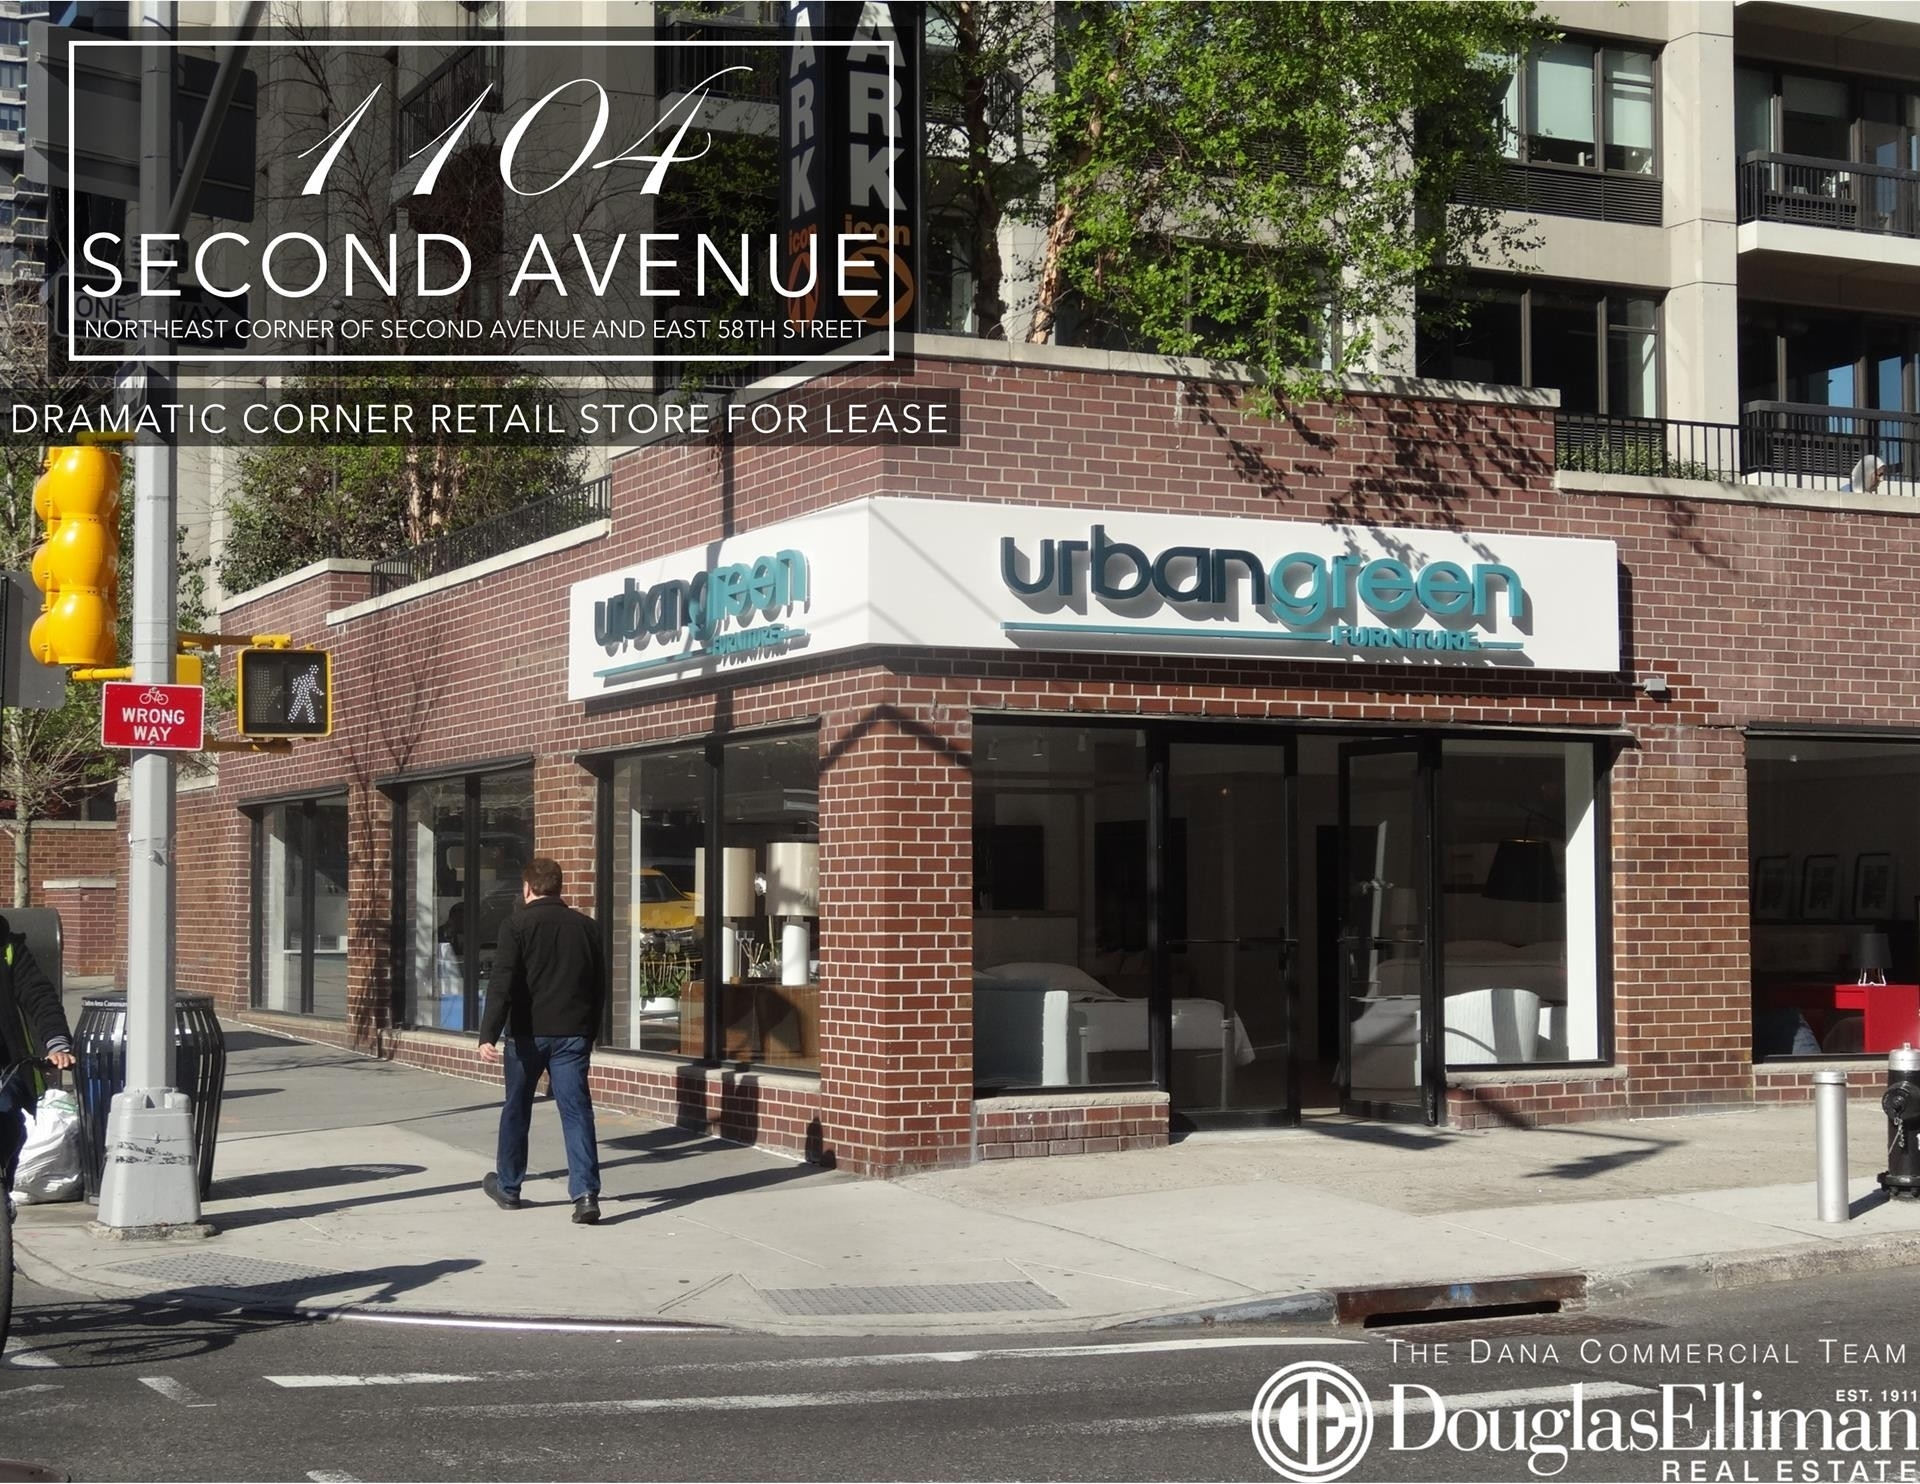 Retail Leases at 1104 Second Avenue, GROUND Midtown East, New York, NY 10022